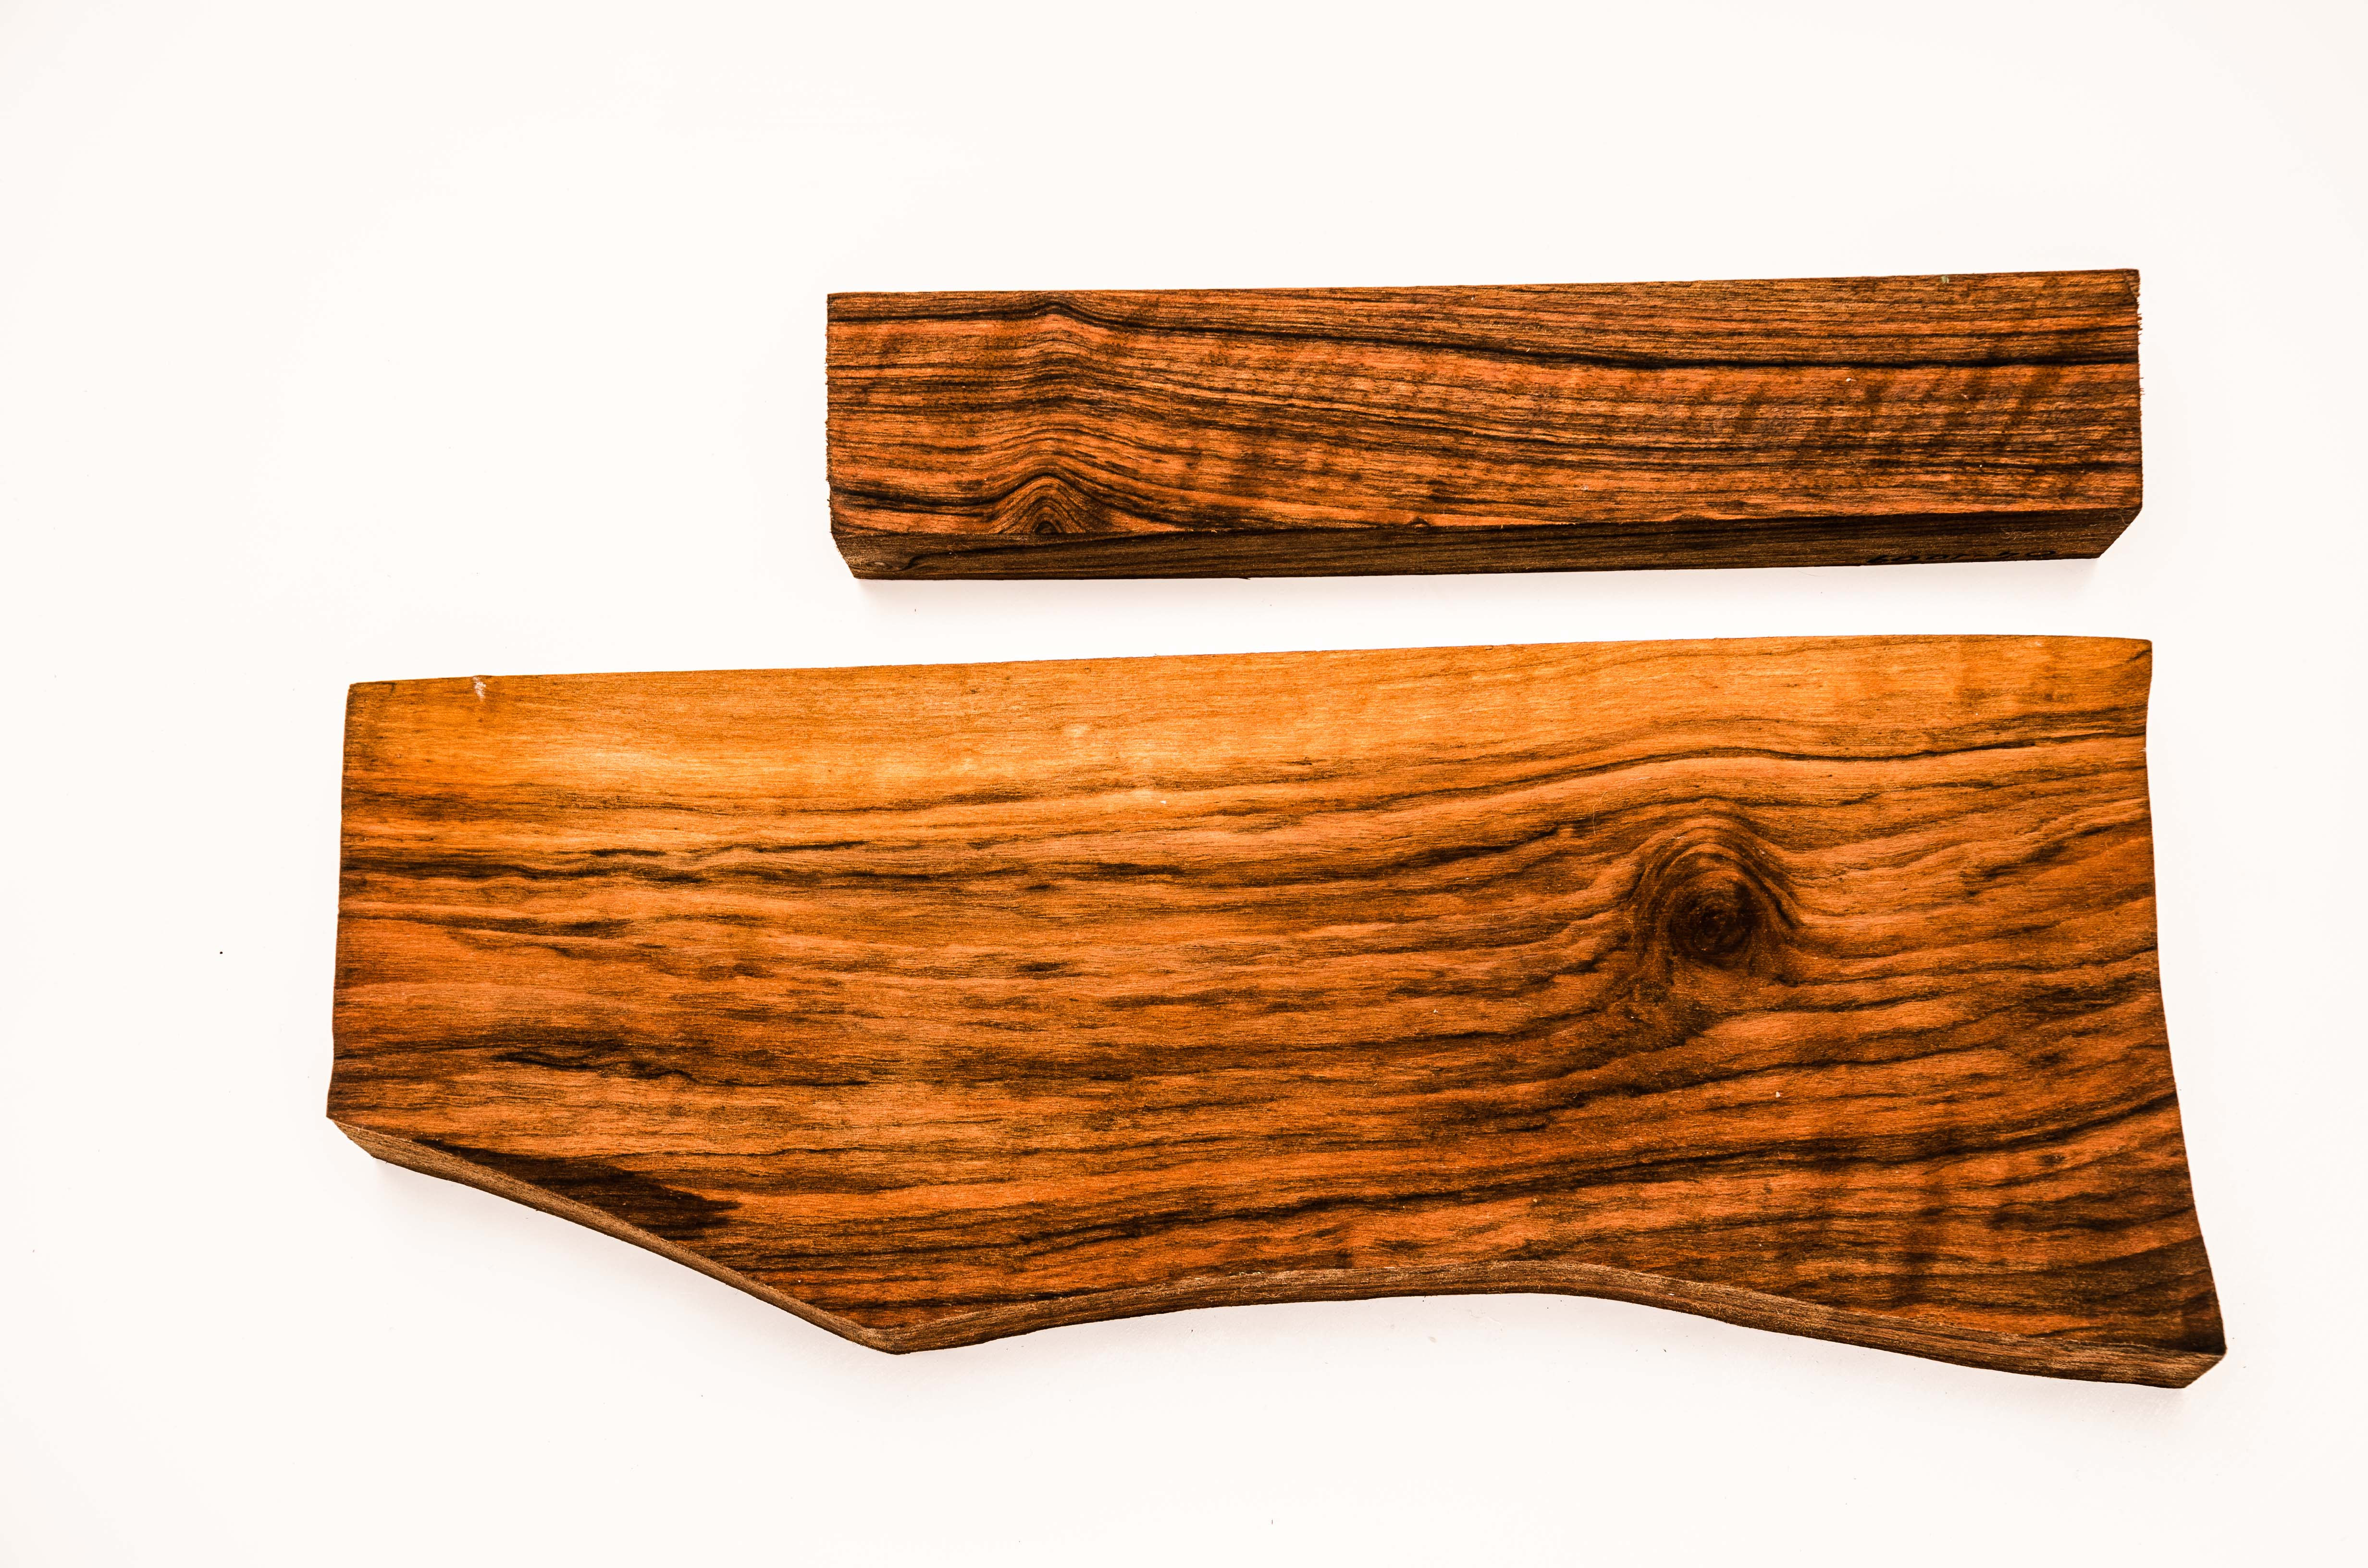 walnut_stock_blanks_for_guns_and_rifles-0451